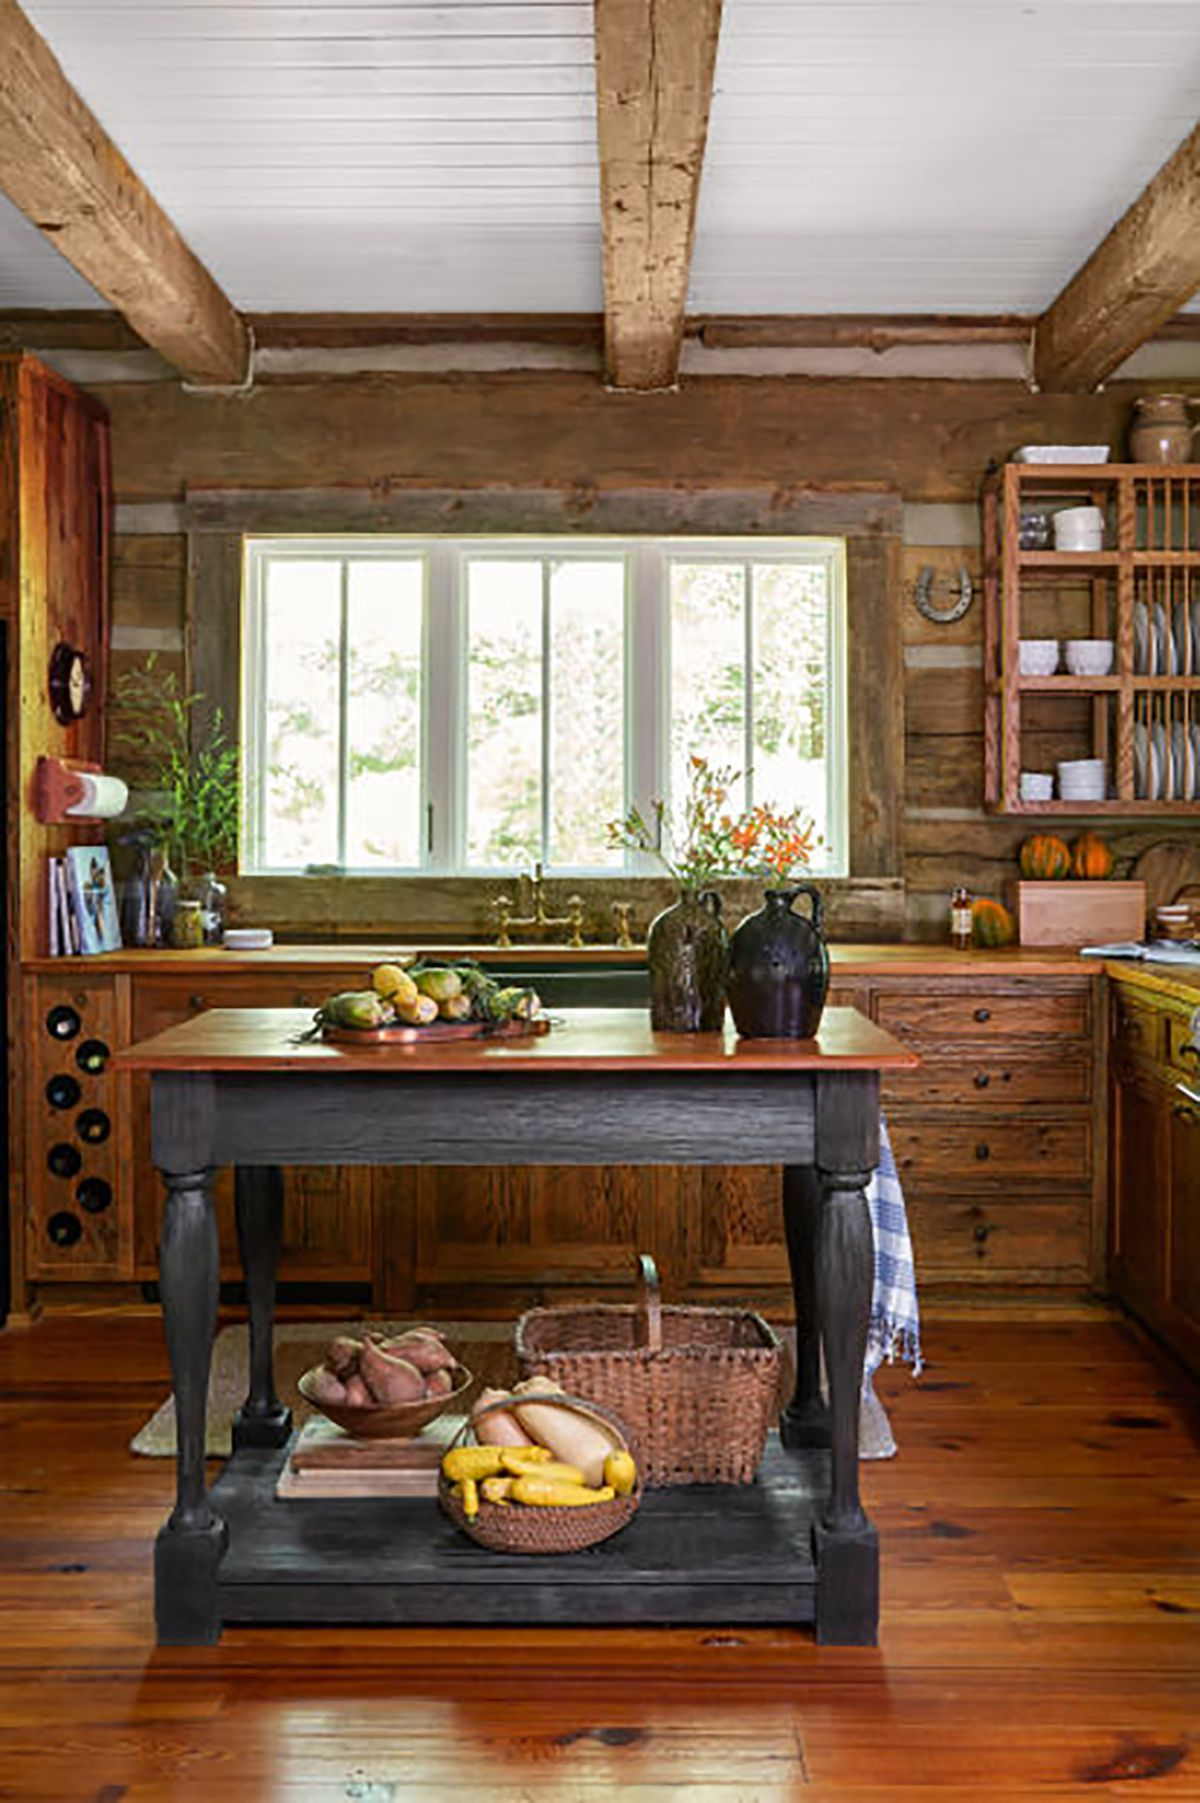 These Rustic Farmhouse Kitchens Will Inspire You To Renovate